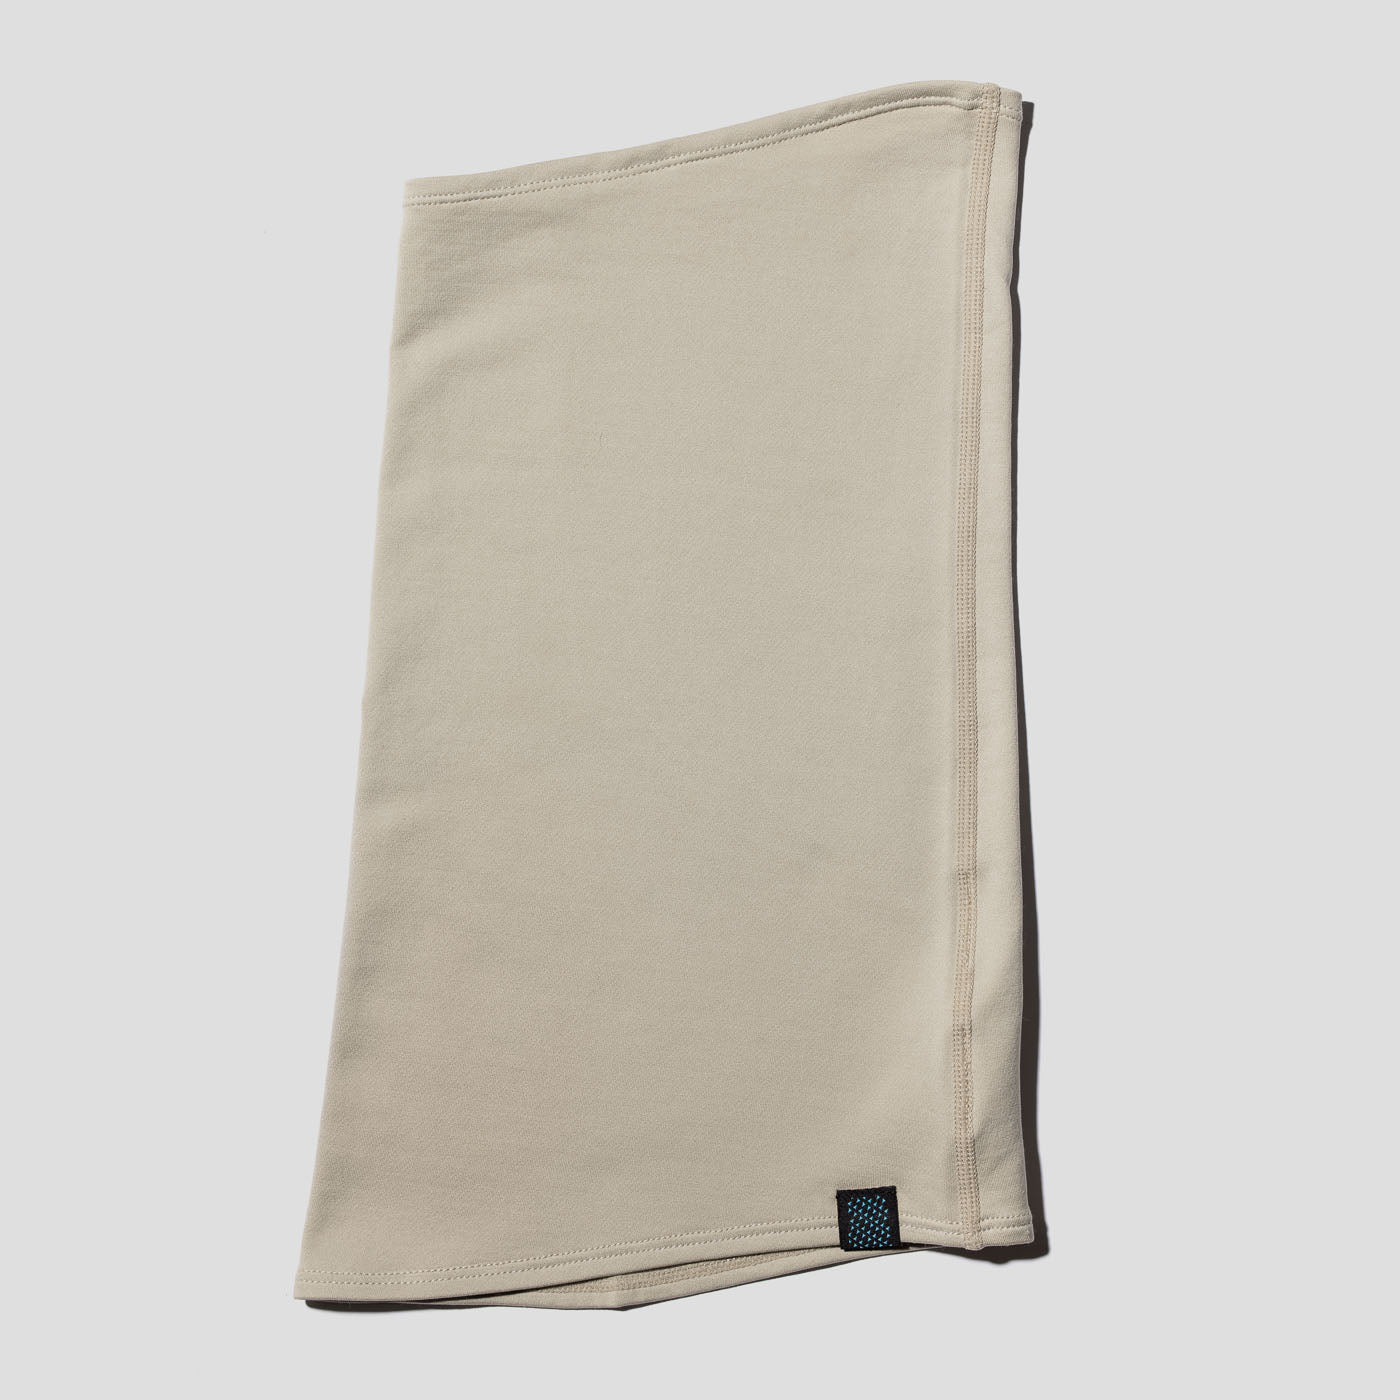 Neck Warmer - Khaki (Medium/Large)